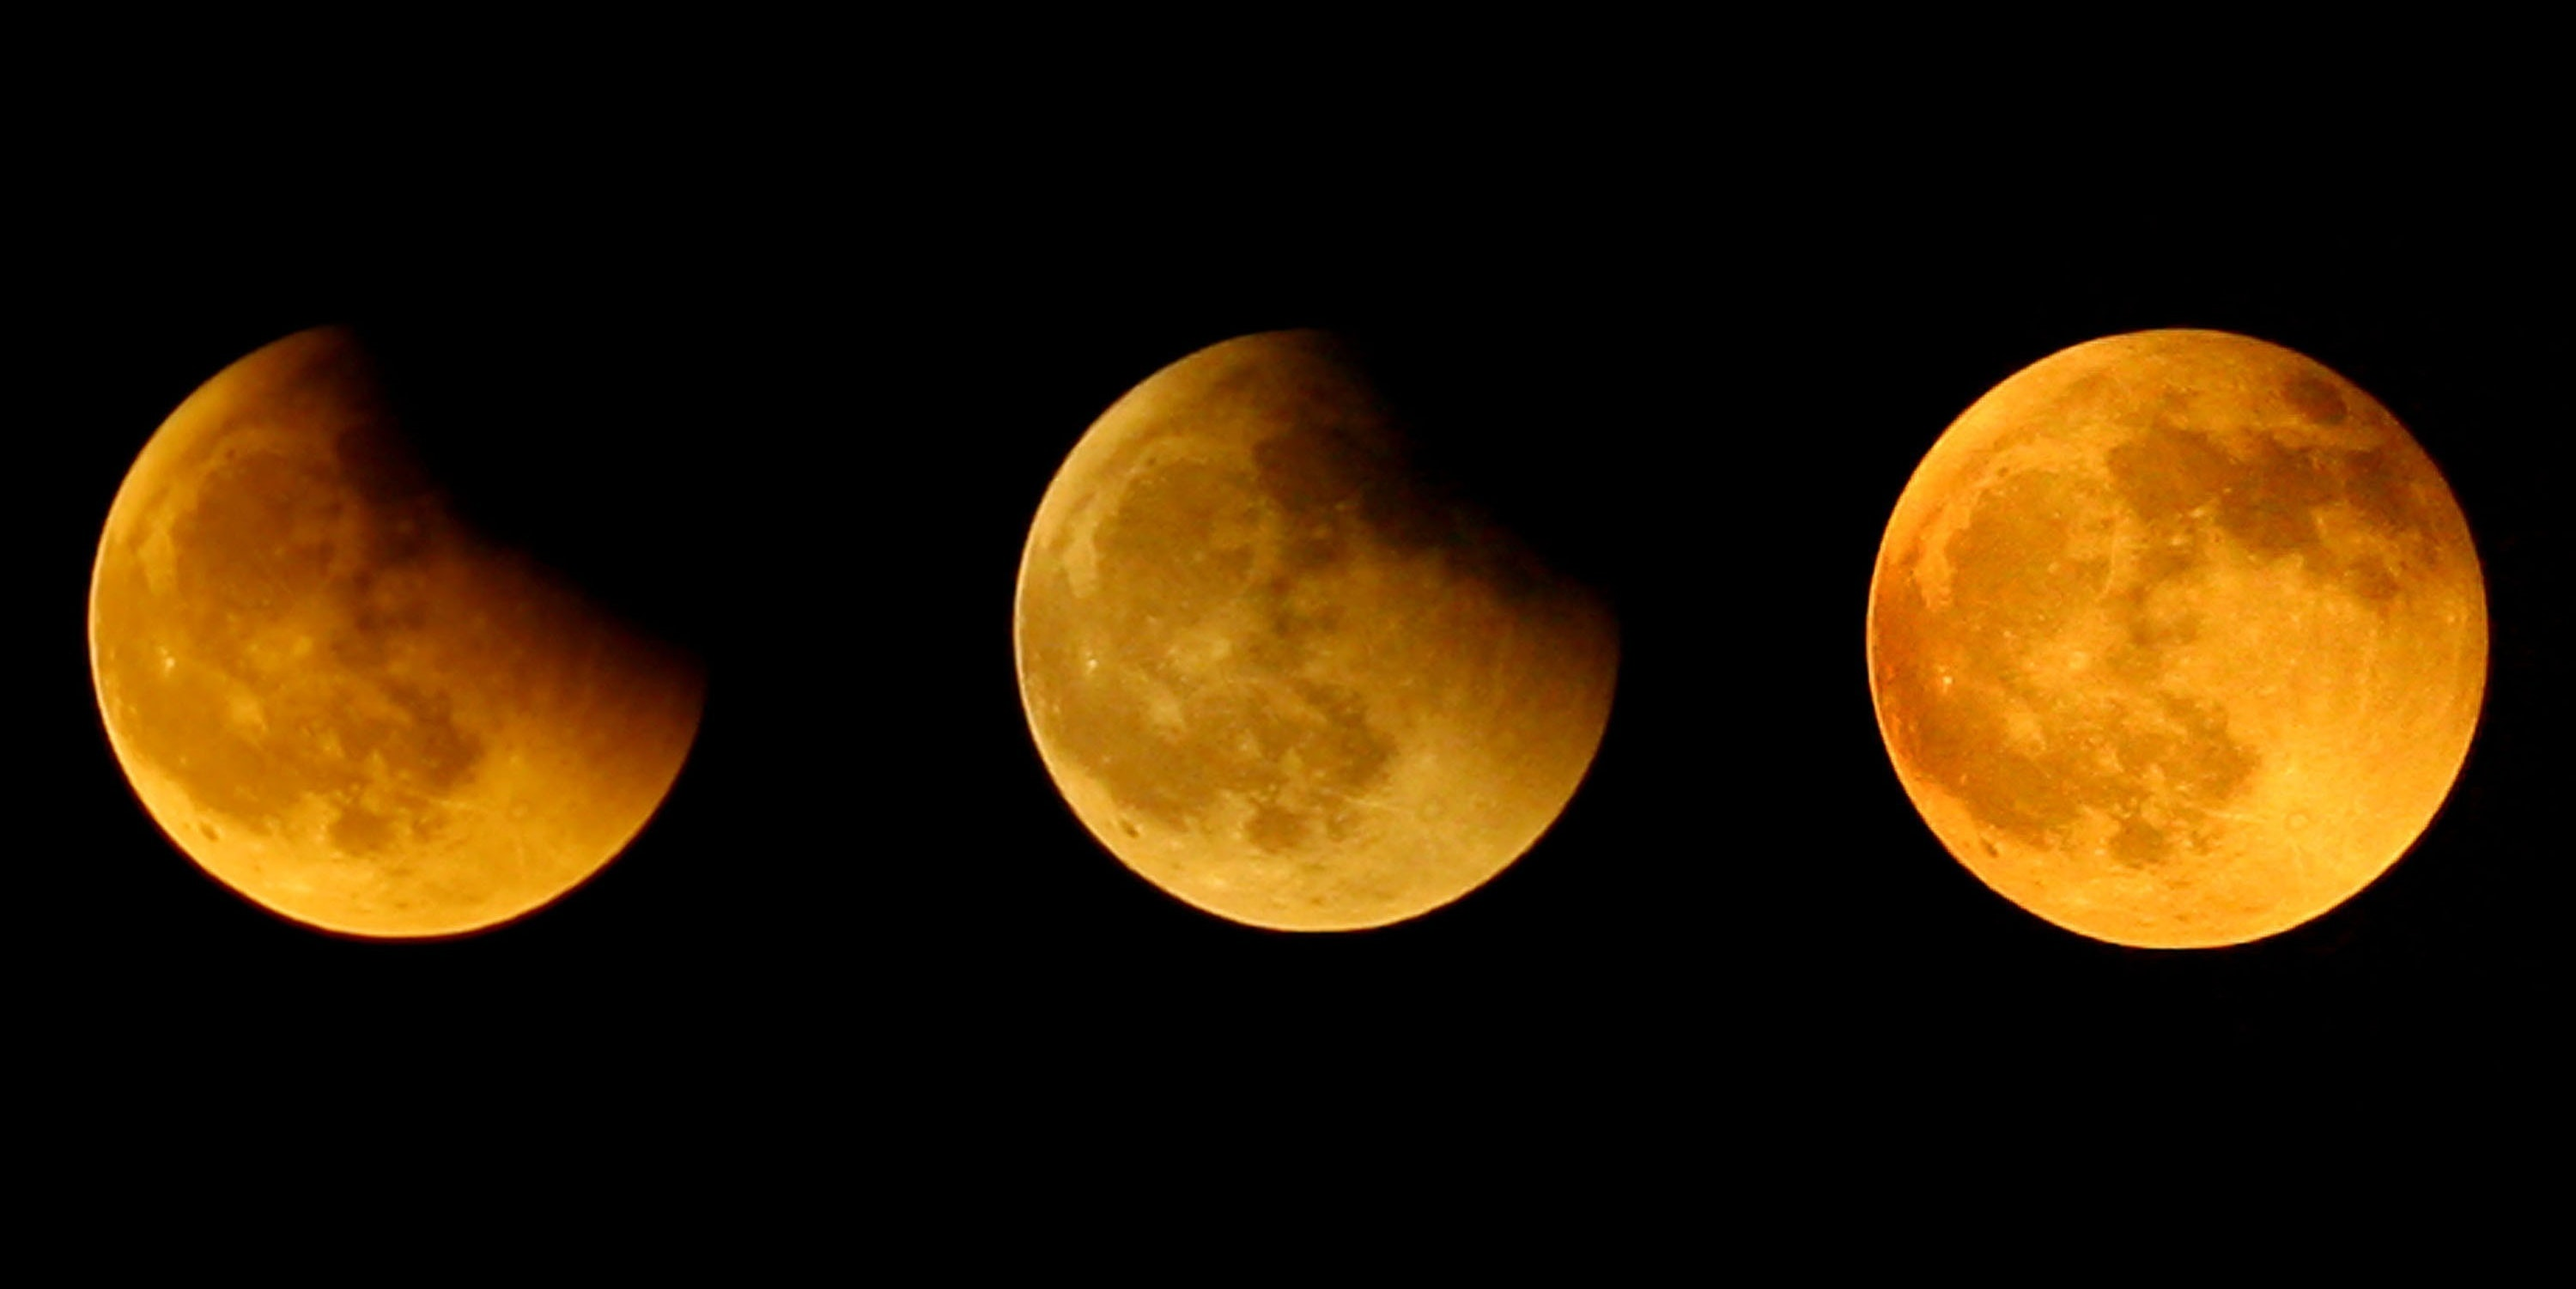 CHONGQING, CHINA - AUGUST 28: (CHINA OUT) This combination photo illustration shows a partial lunar eclipse on August 28, 2007 in Chongqing Municipality, China. The spectacle was visible in most parts of China and some countries in Southeast Asia today.  (Photo by China Photos/Getty Images)